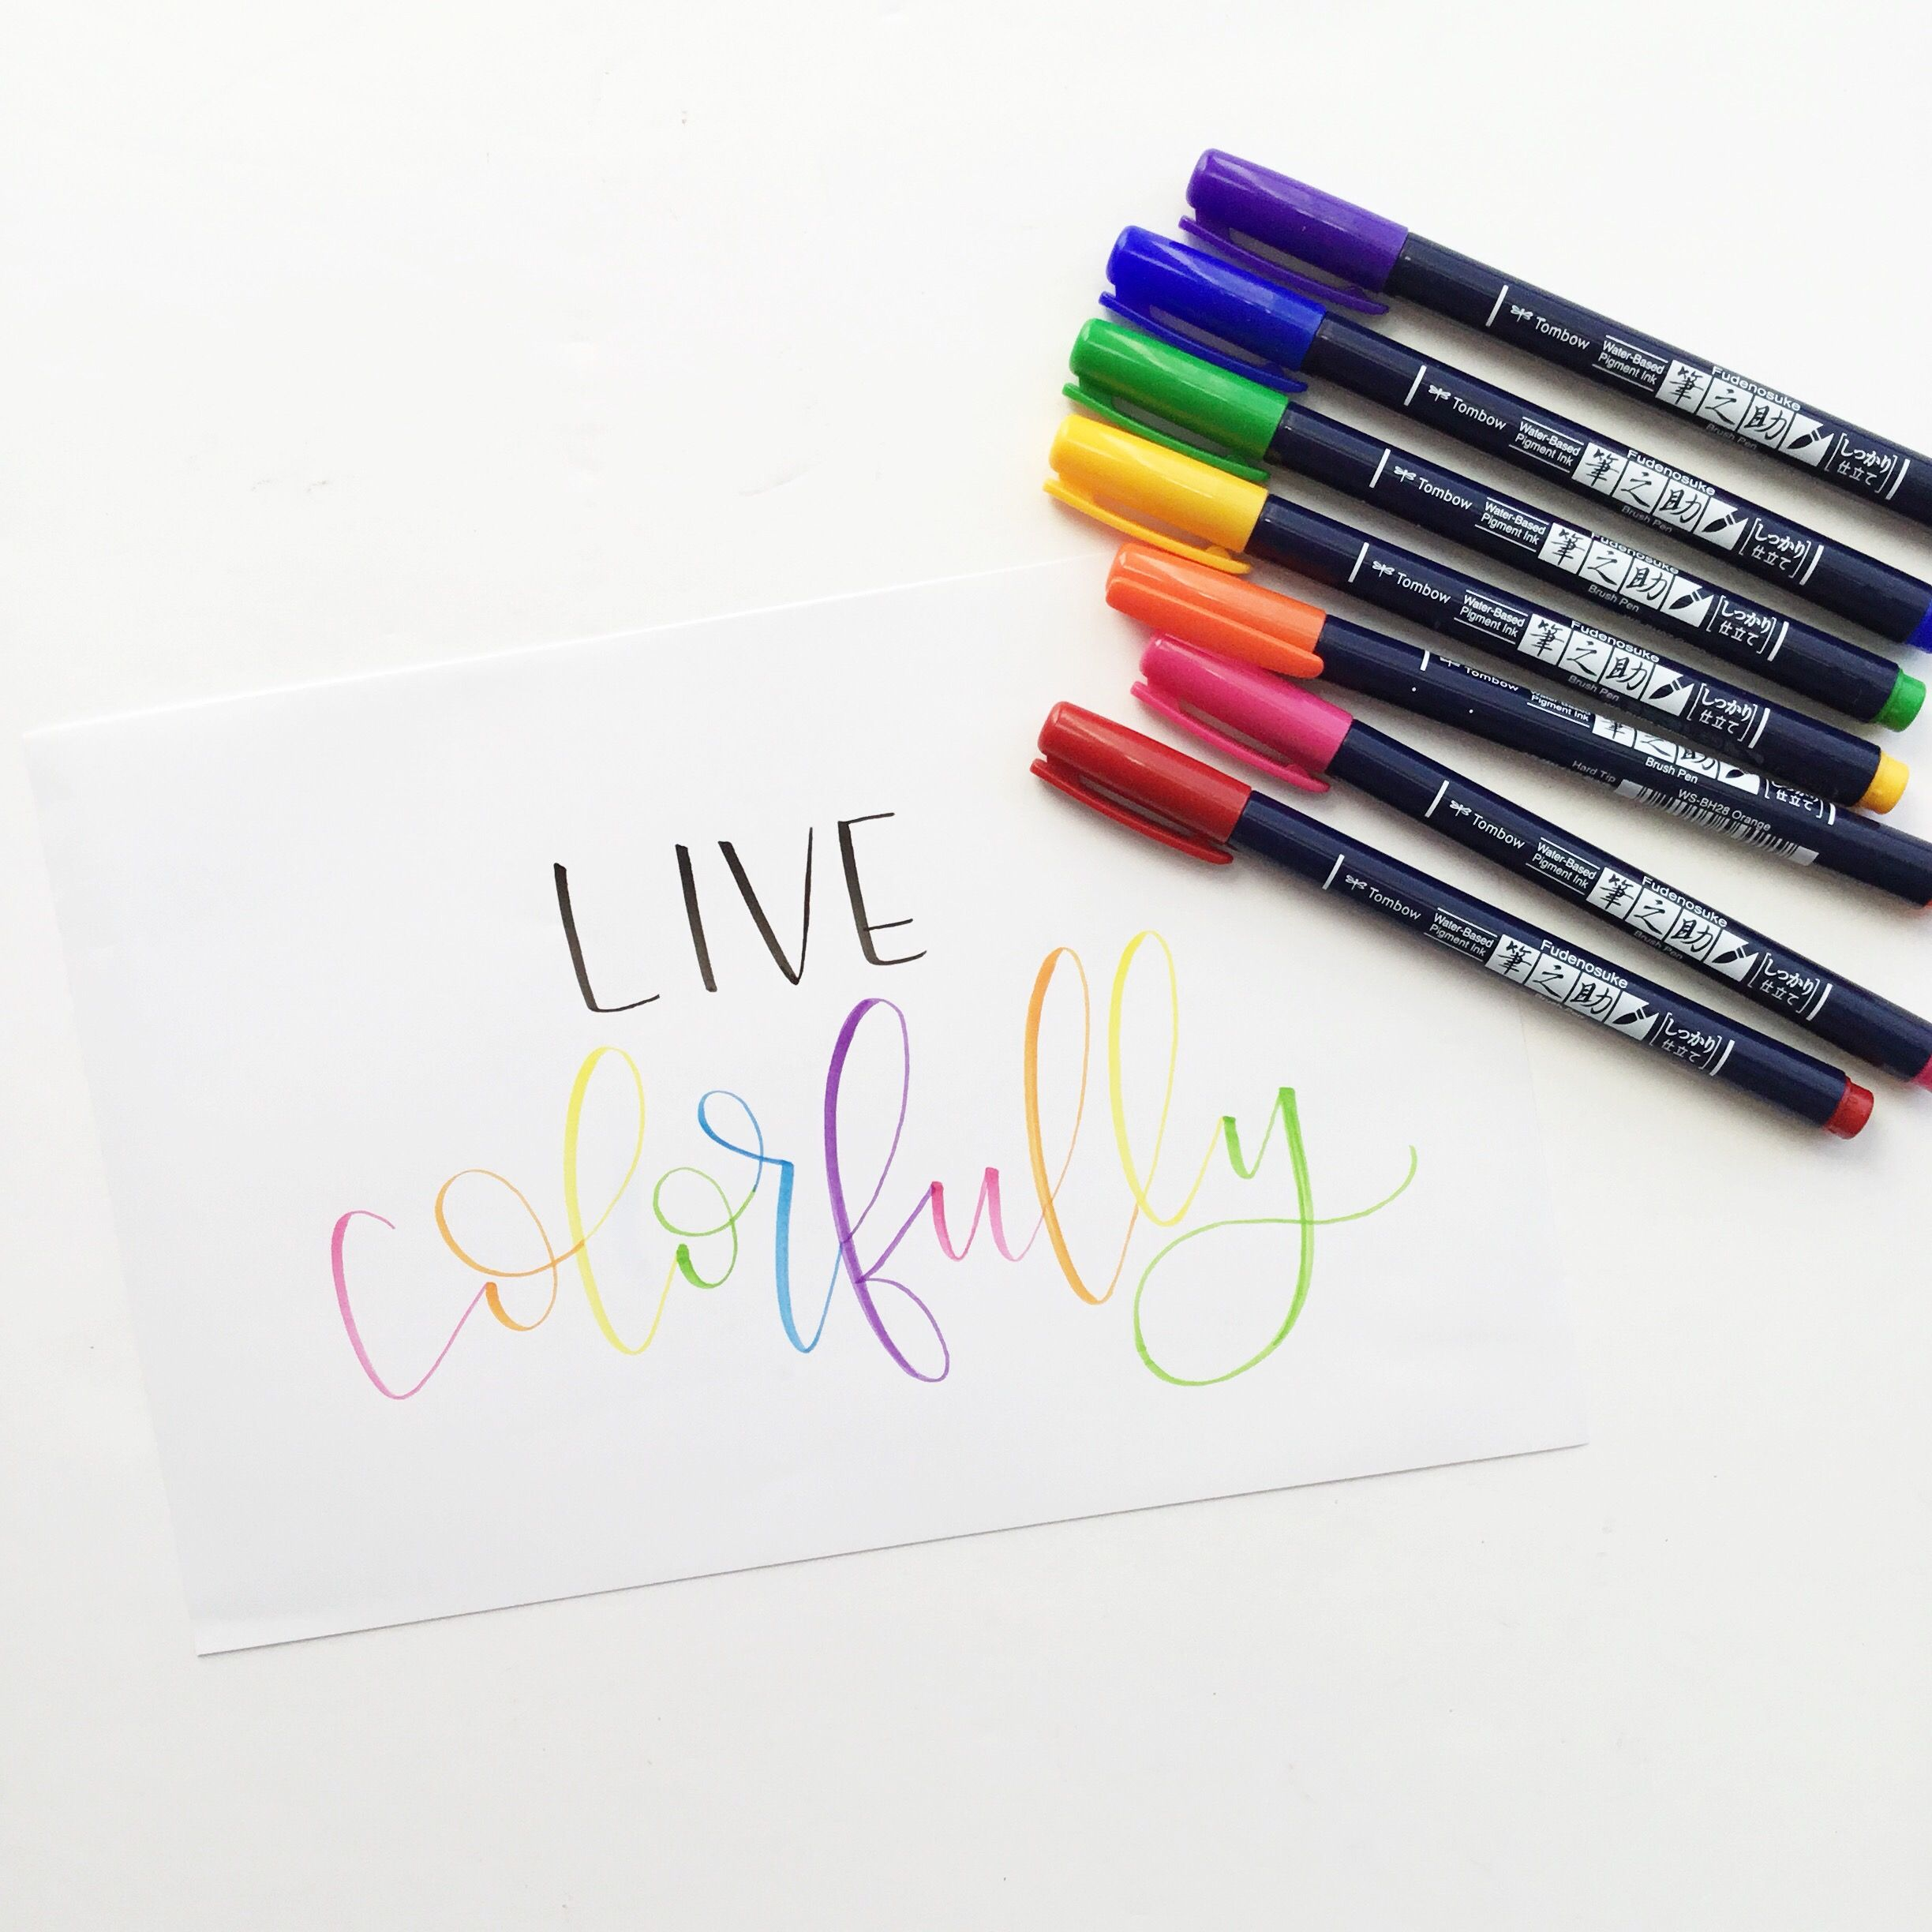 Tombow Fudenosuke Colors Are Here